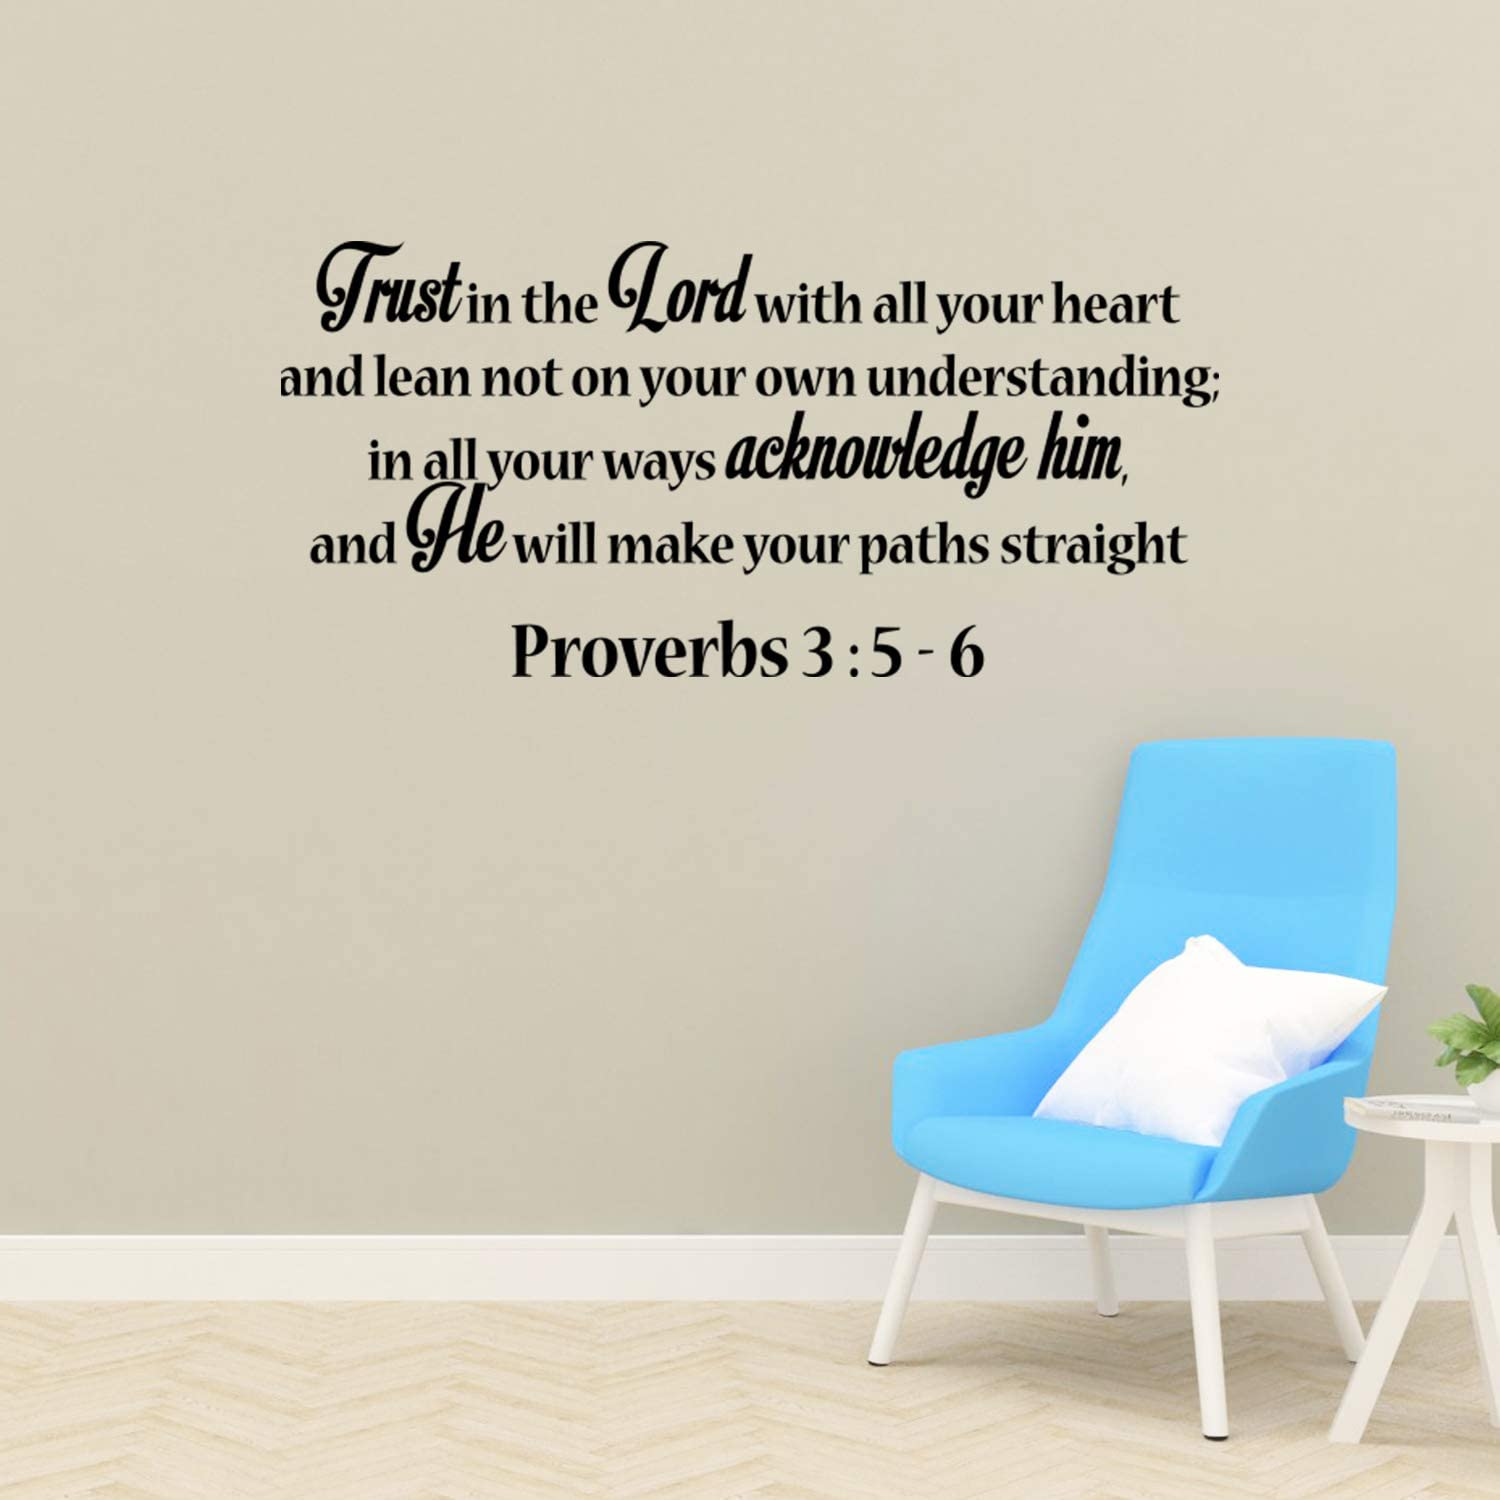 Empresal Trust in The Lord Proverbs 3:5-6 Religious Wall Art Decal Vinyl Quote Scripture